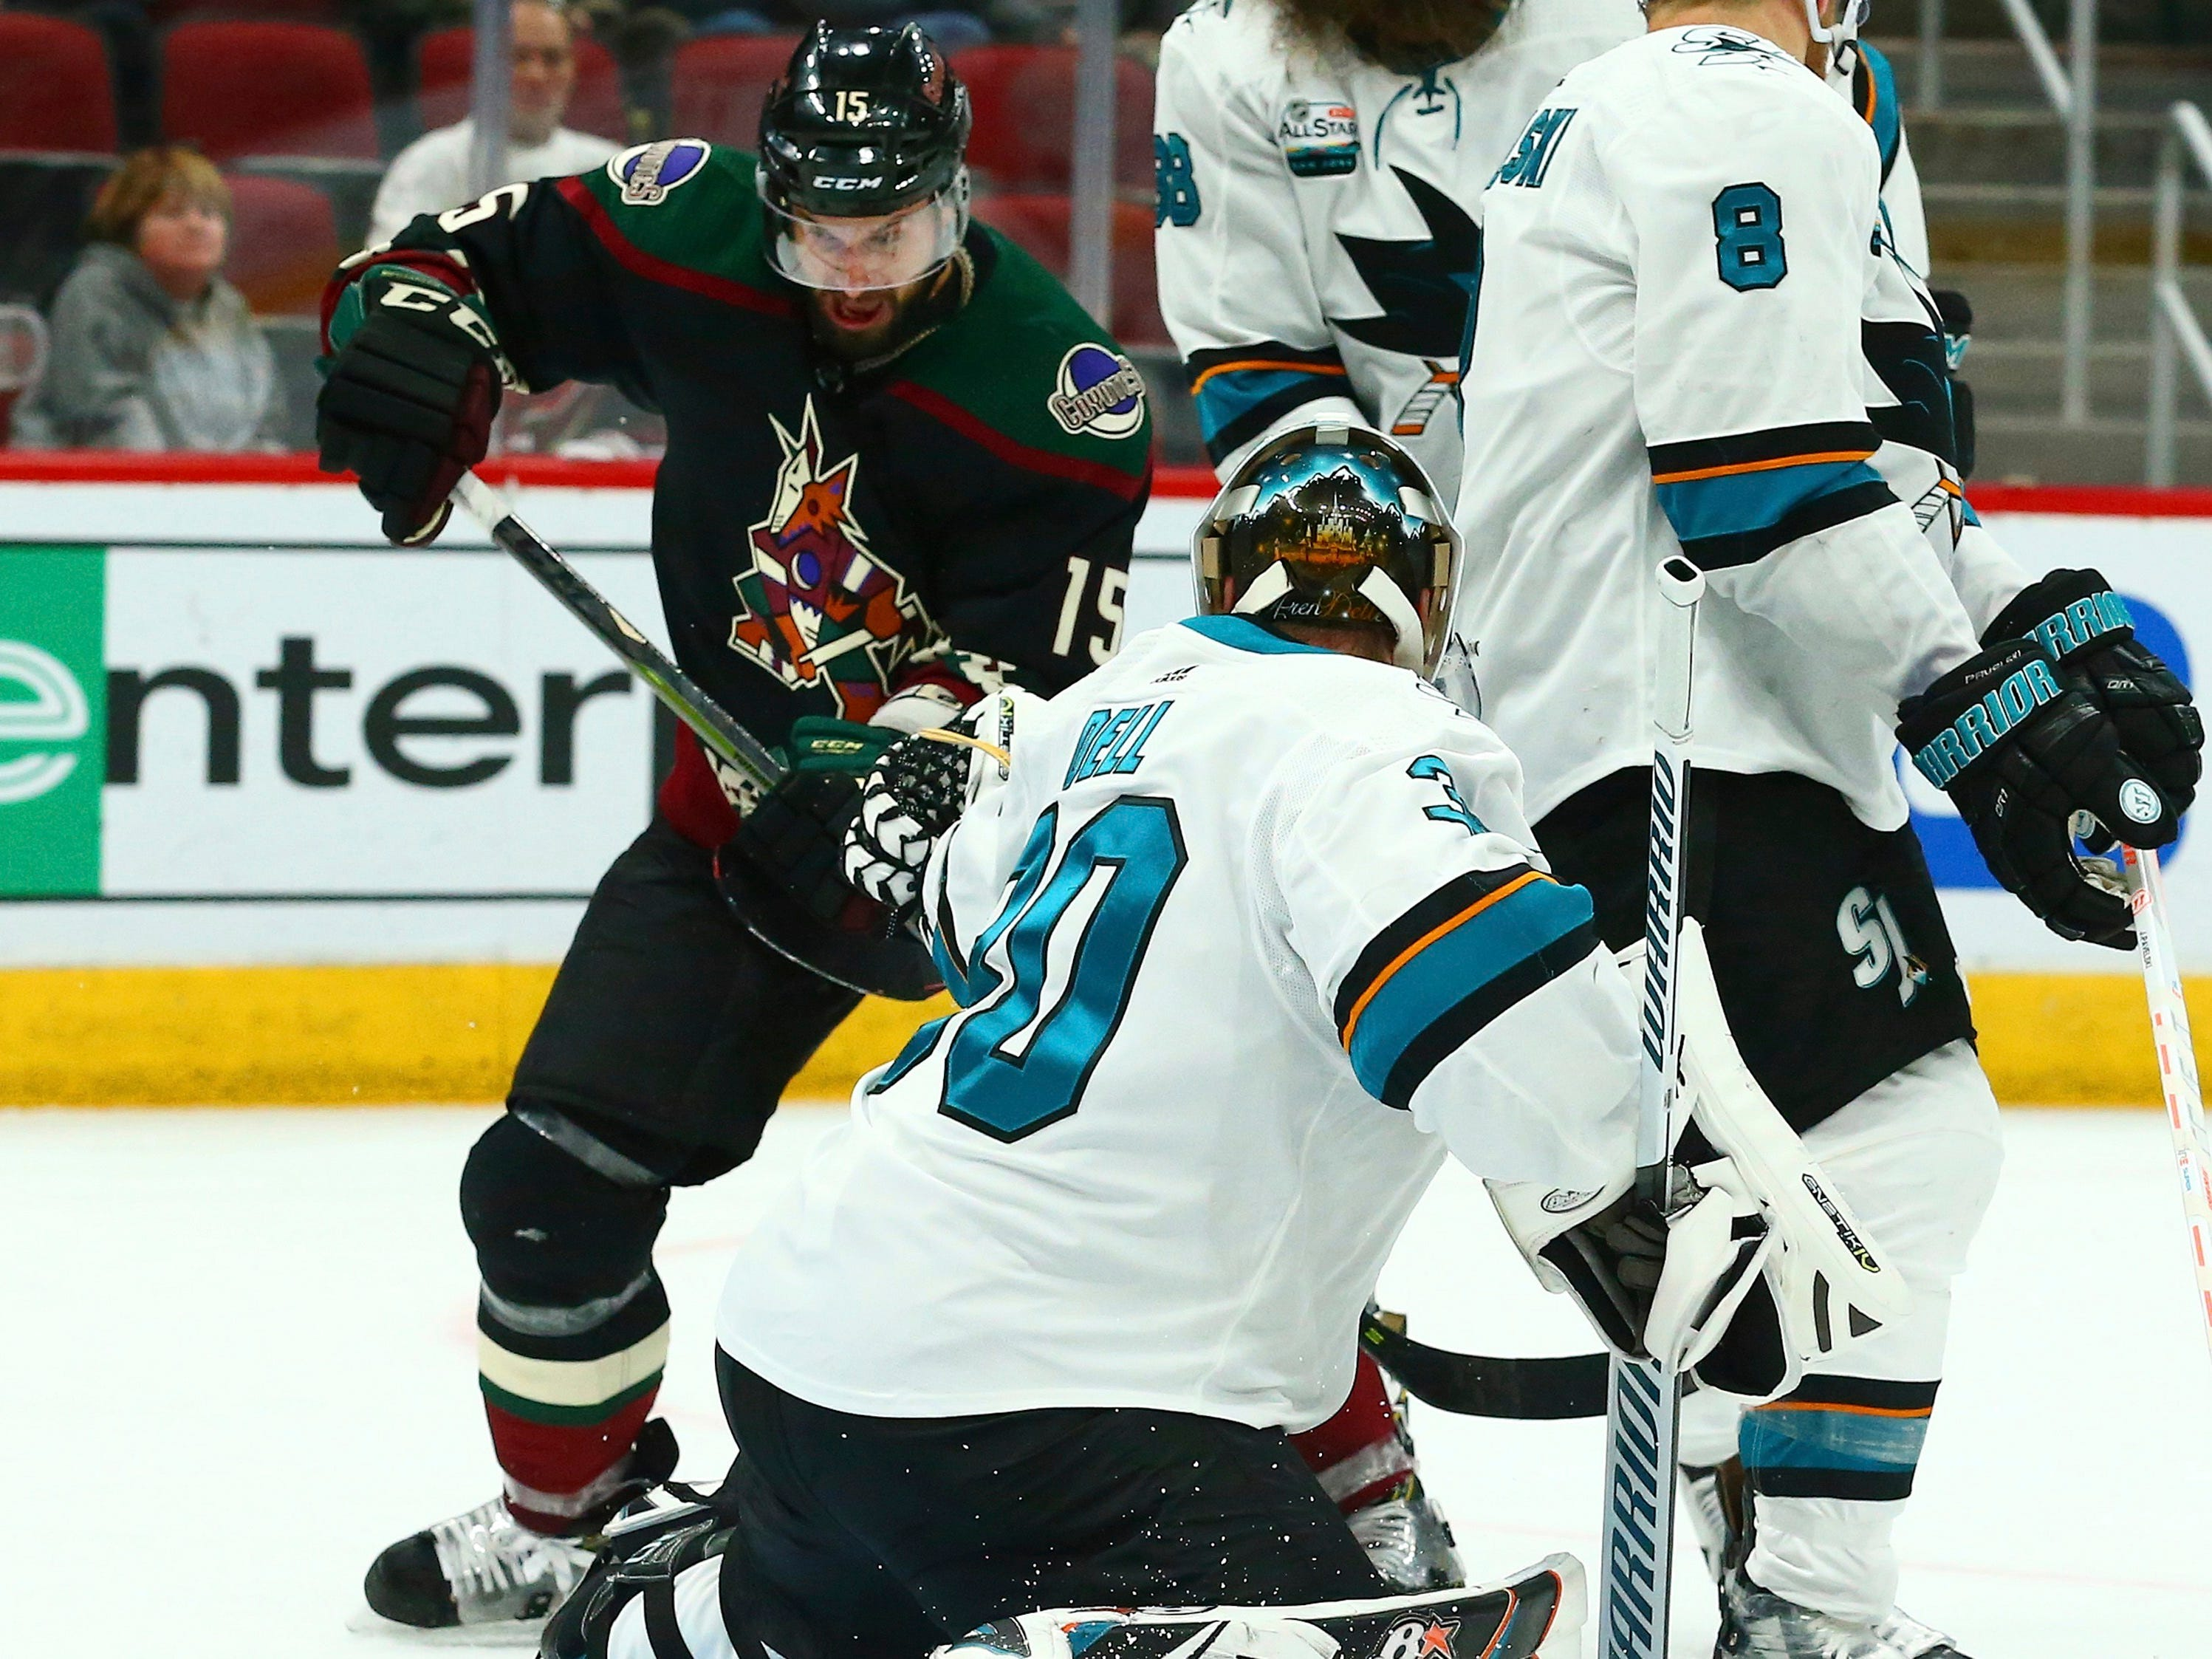 Arizona Coyotes center Brad Richardson (15) redirects the puck past San Jose Sharks goaltender Aaron Dell (30) for a goal during the second period of an NHL hockey game, Saturday, Dec. 8, 2018, in Phoenix.